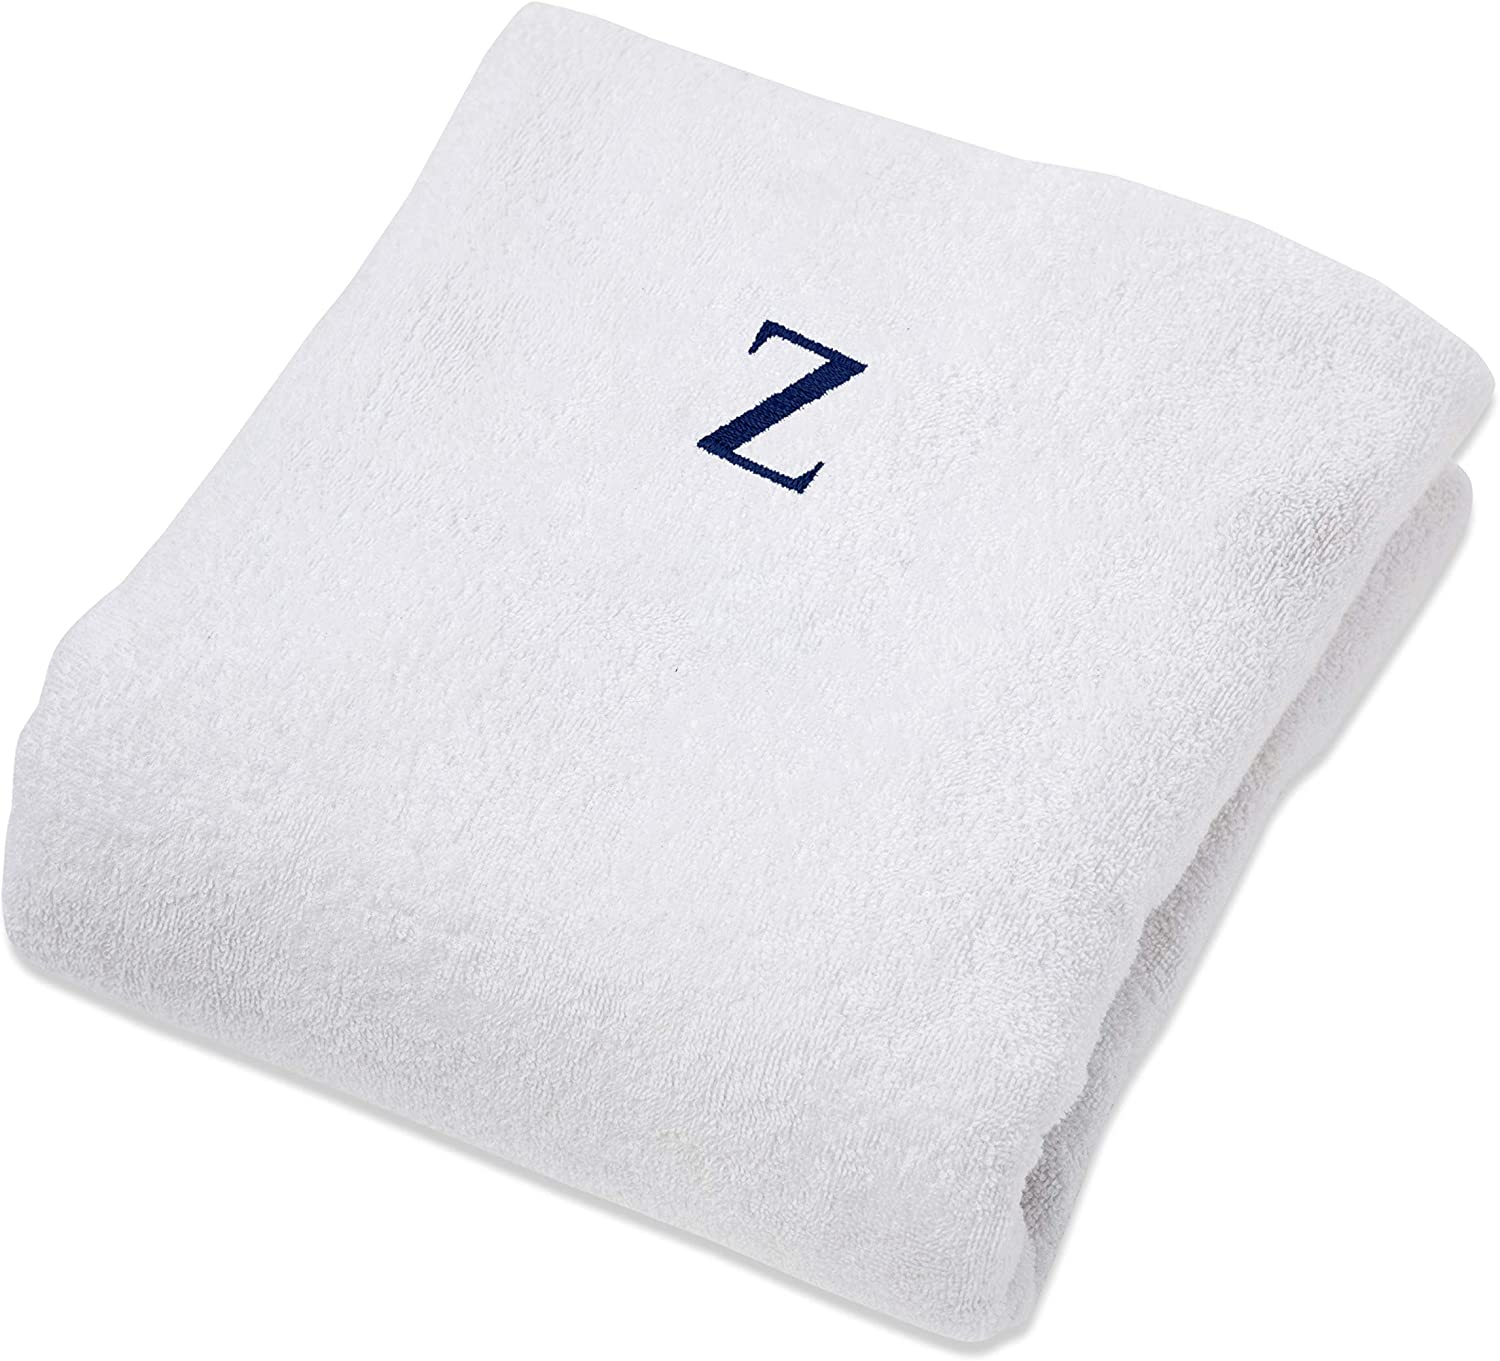 100% Cotton Lounge Chair Cover Outlet SALE with wholesale Let Monogrammed Personalized